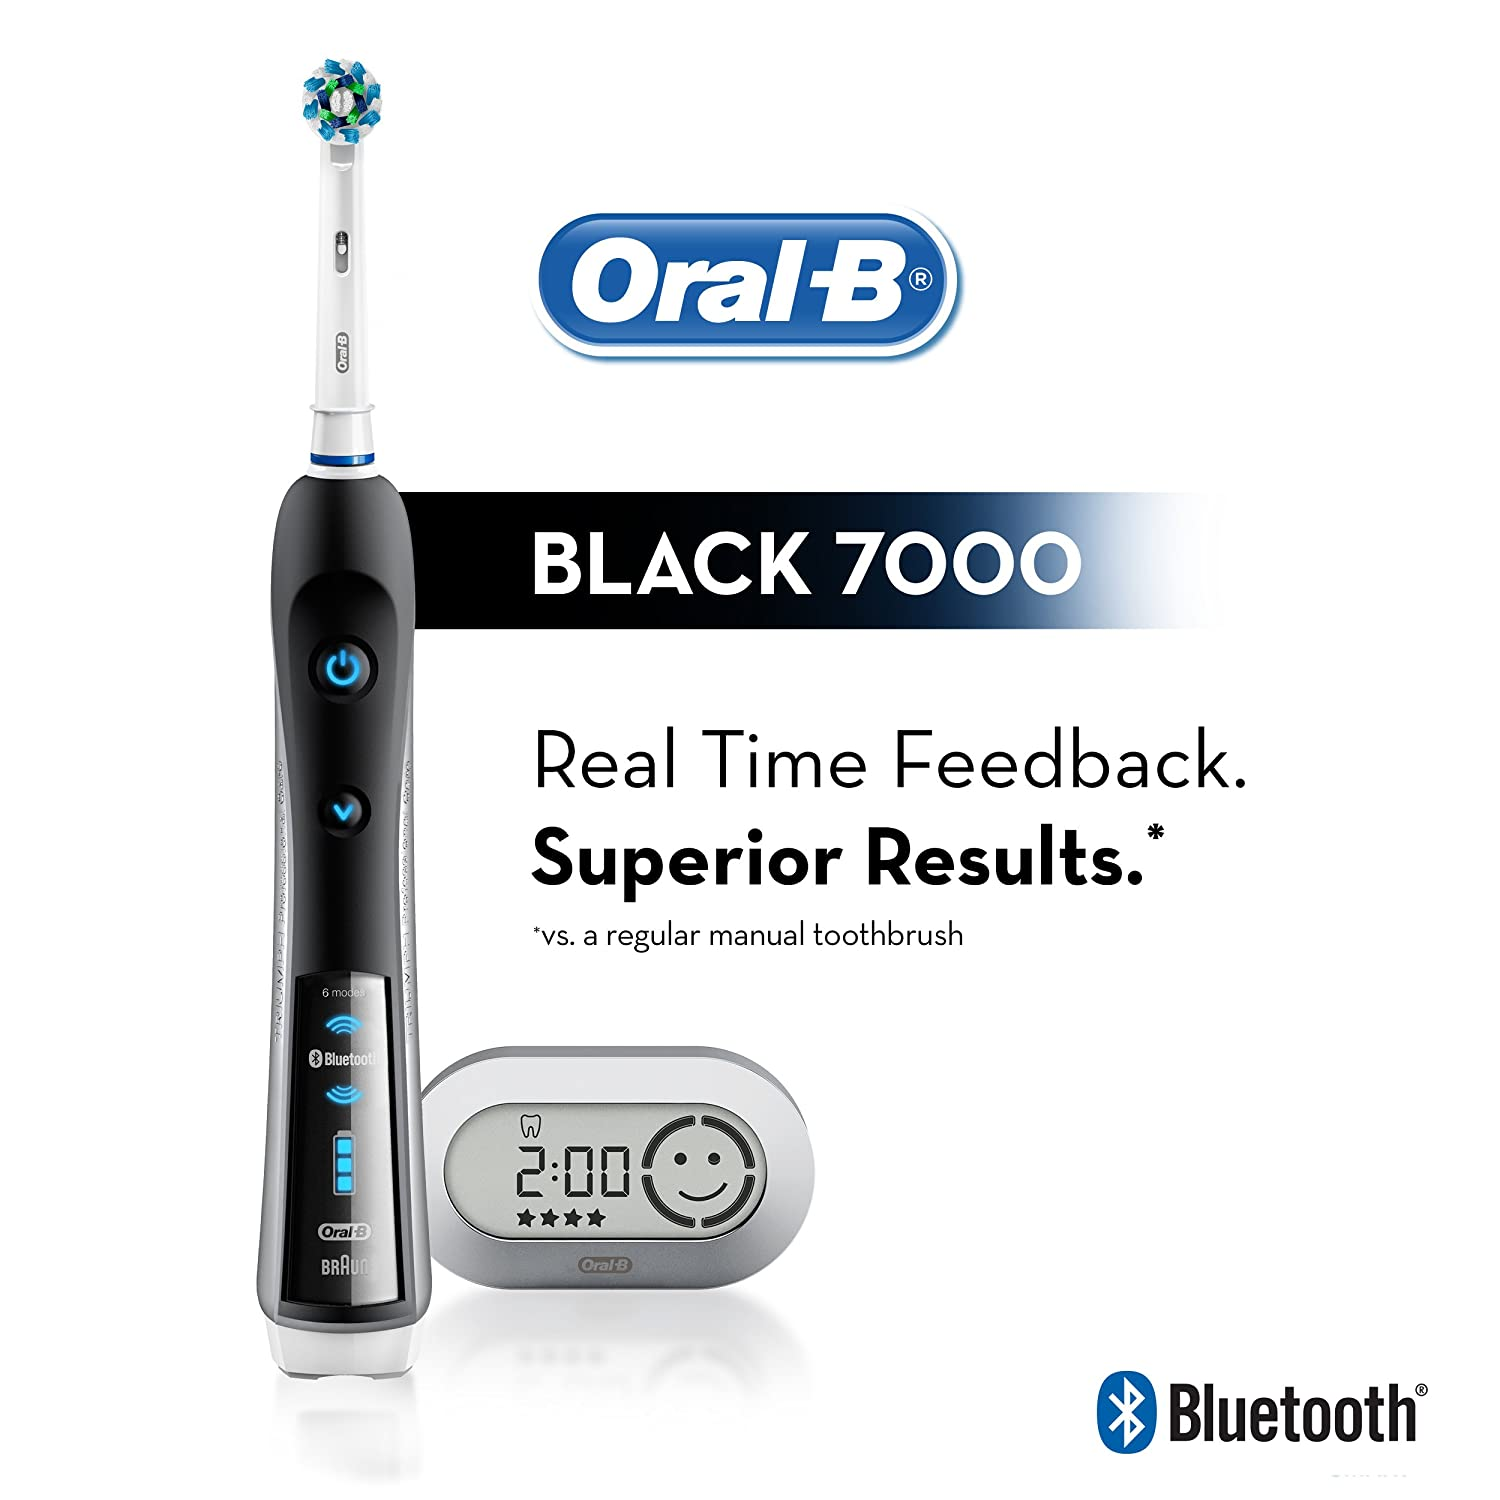 Oral-B Pro 7000 SmartSeries Black Electronic Power Rechargeable Battery Electric Toothbrush with Bluetooth Connectivity